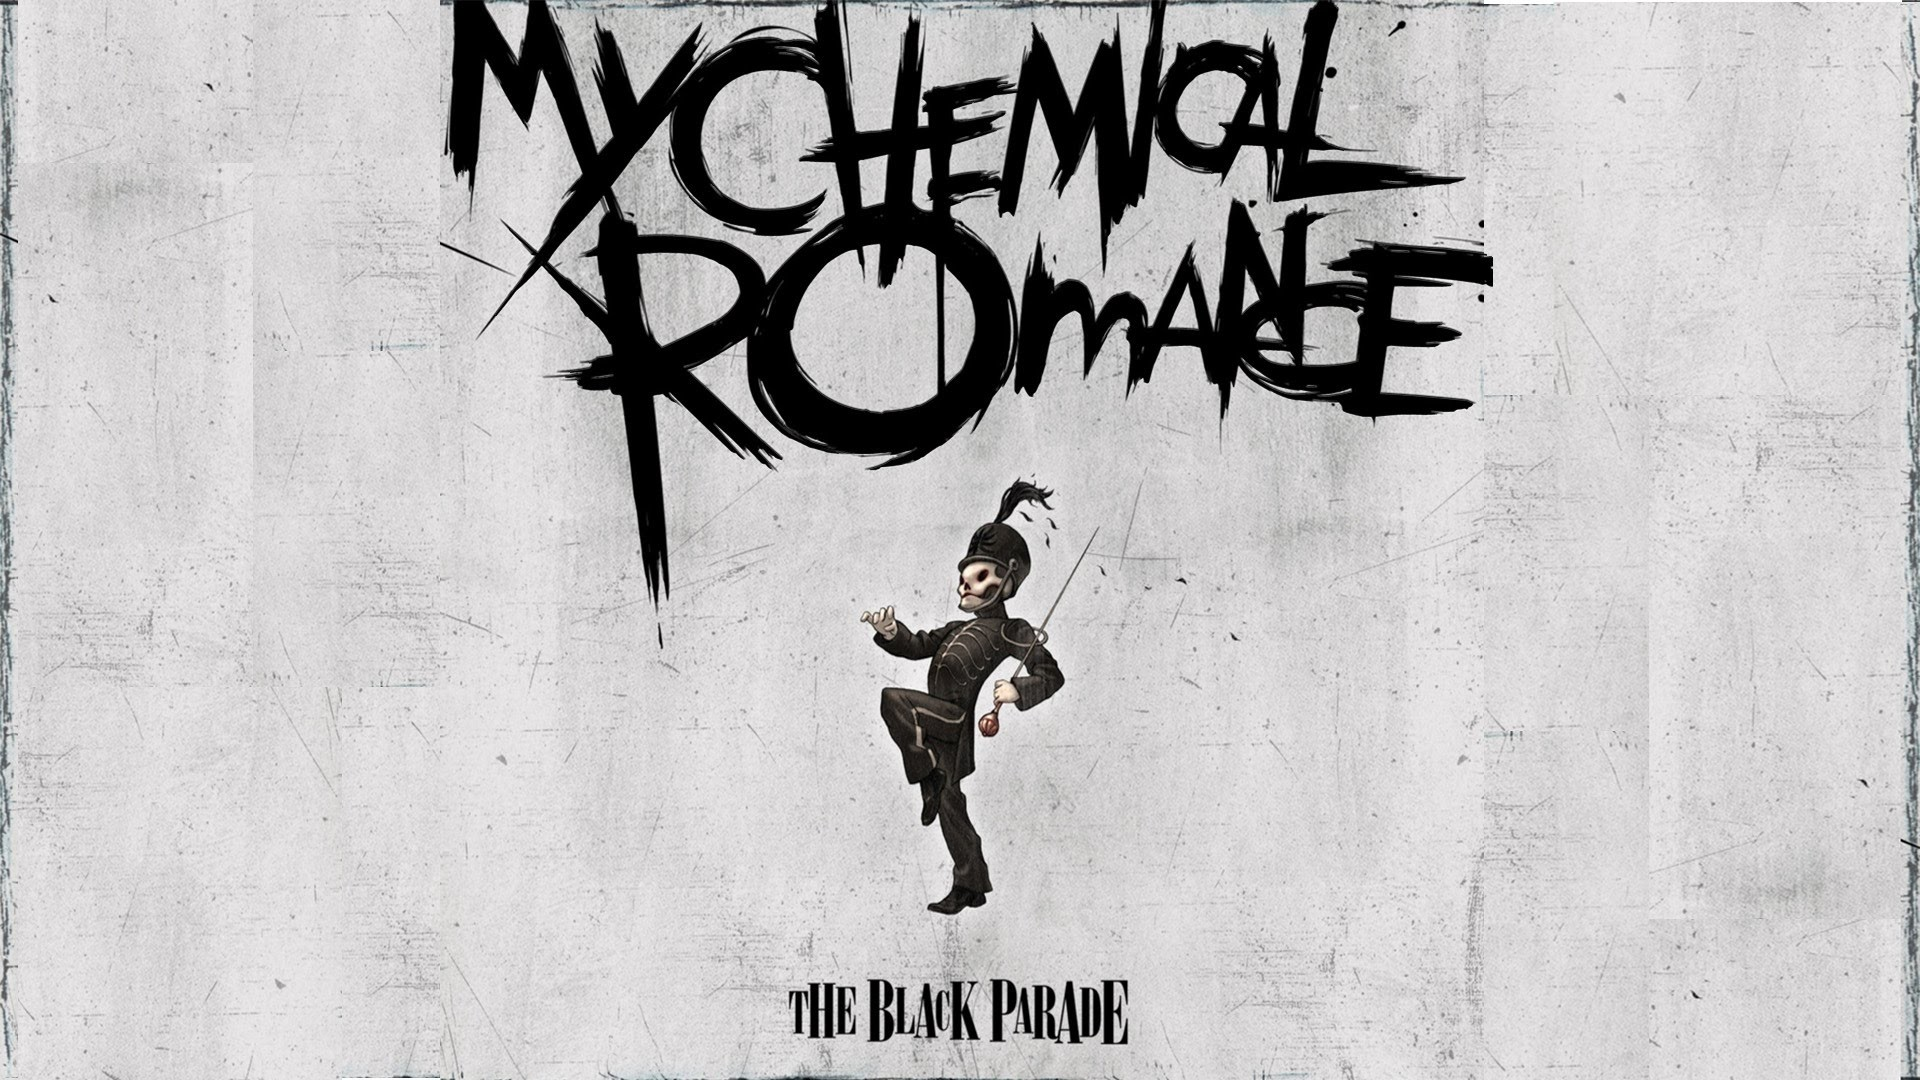 Vinyl of the Week: The Black Parade by My Chemical Romance